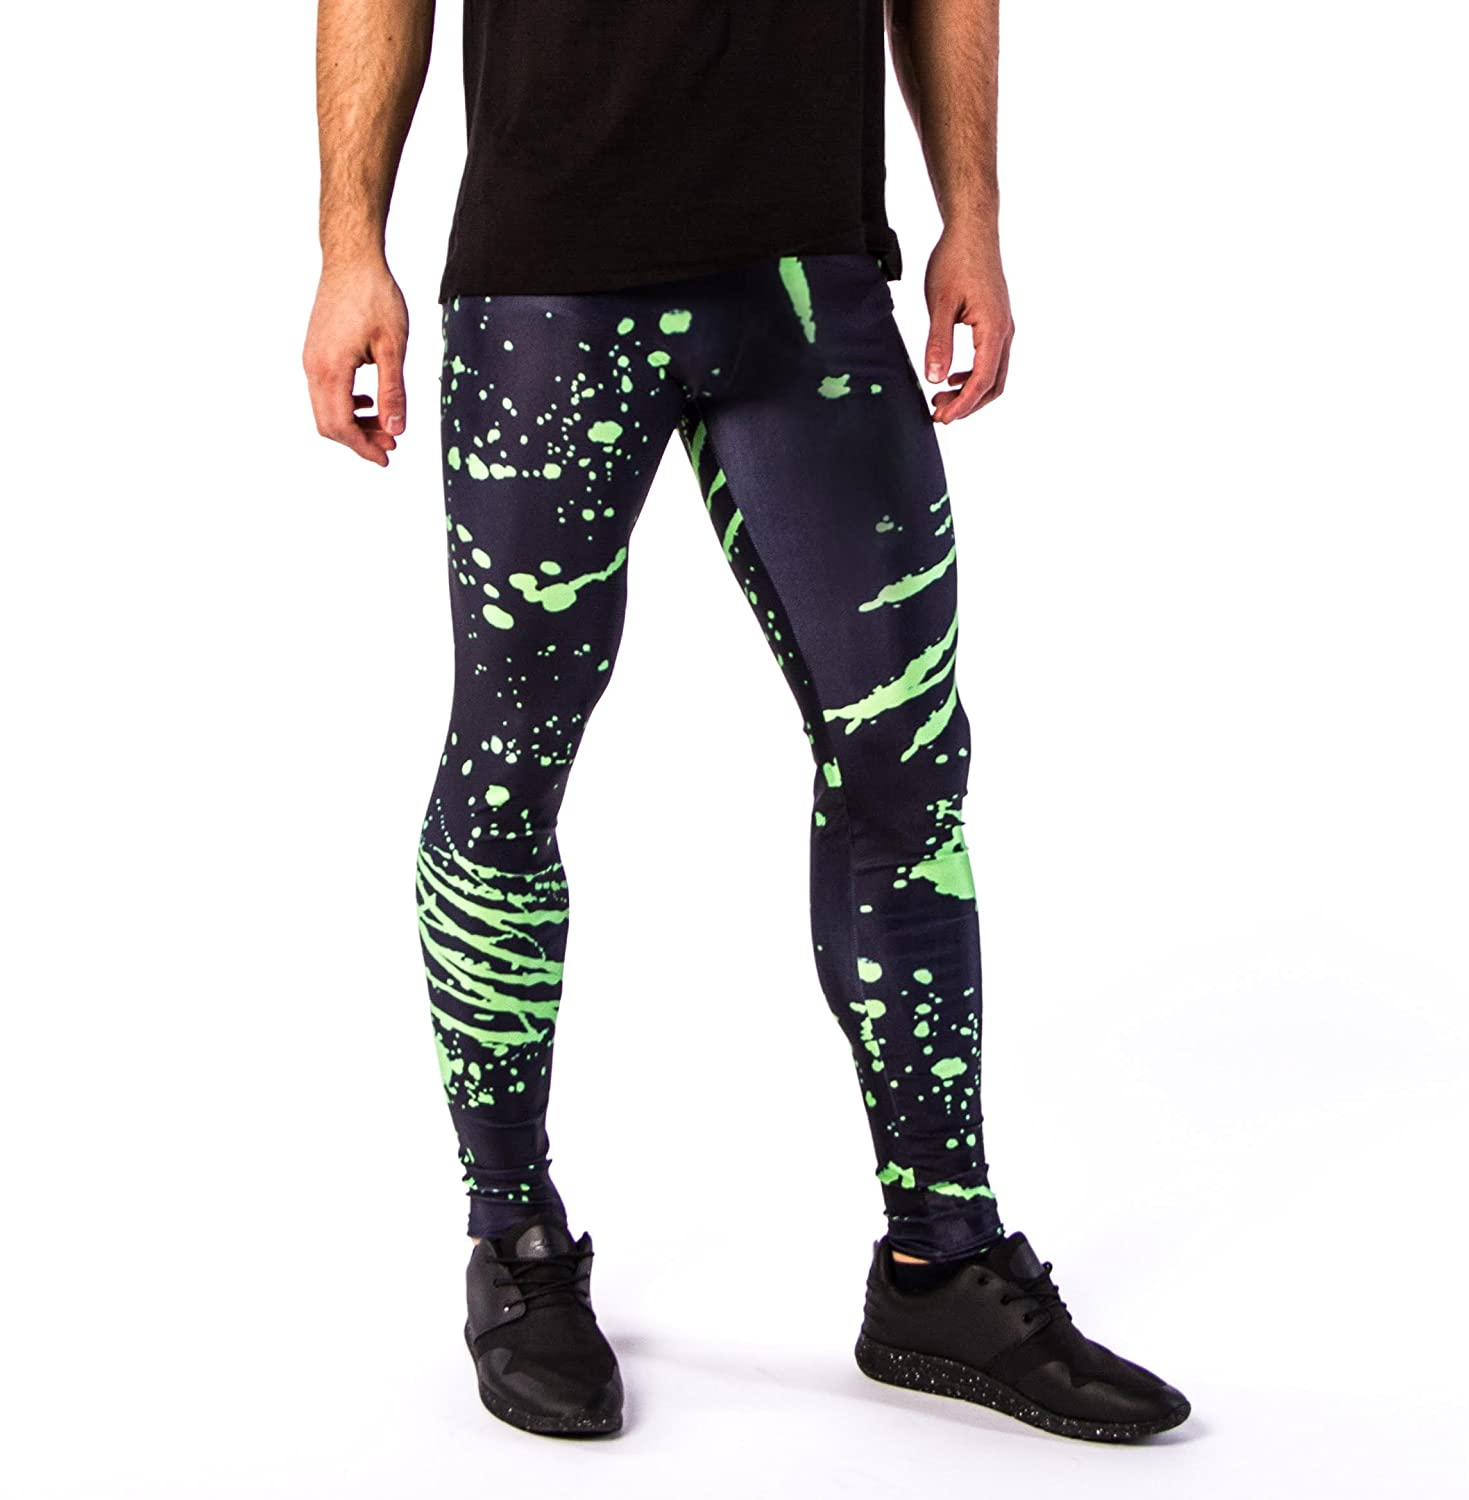 d559279d10247 Kapow Meggings New Colourful Print Mens Leggings, Fashion and Yoga Tights,  Cool Warm Baselayer Sports Pants: Amazon.co.uk: Clothing